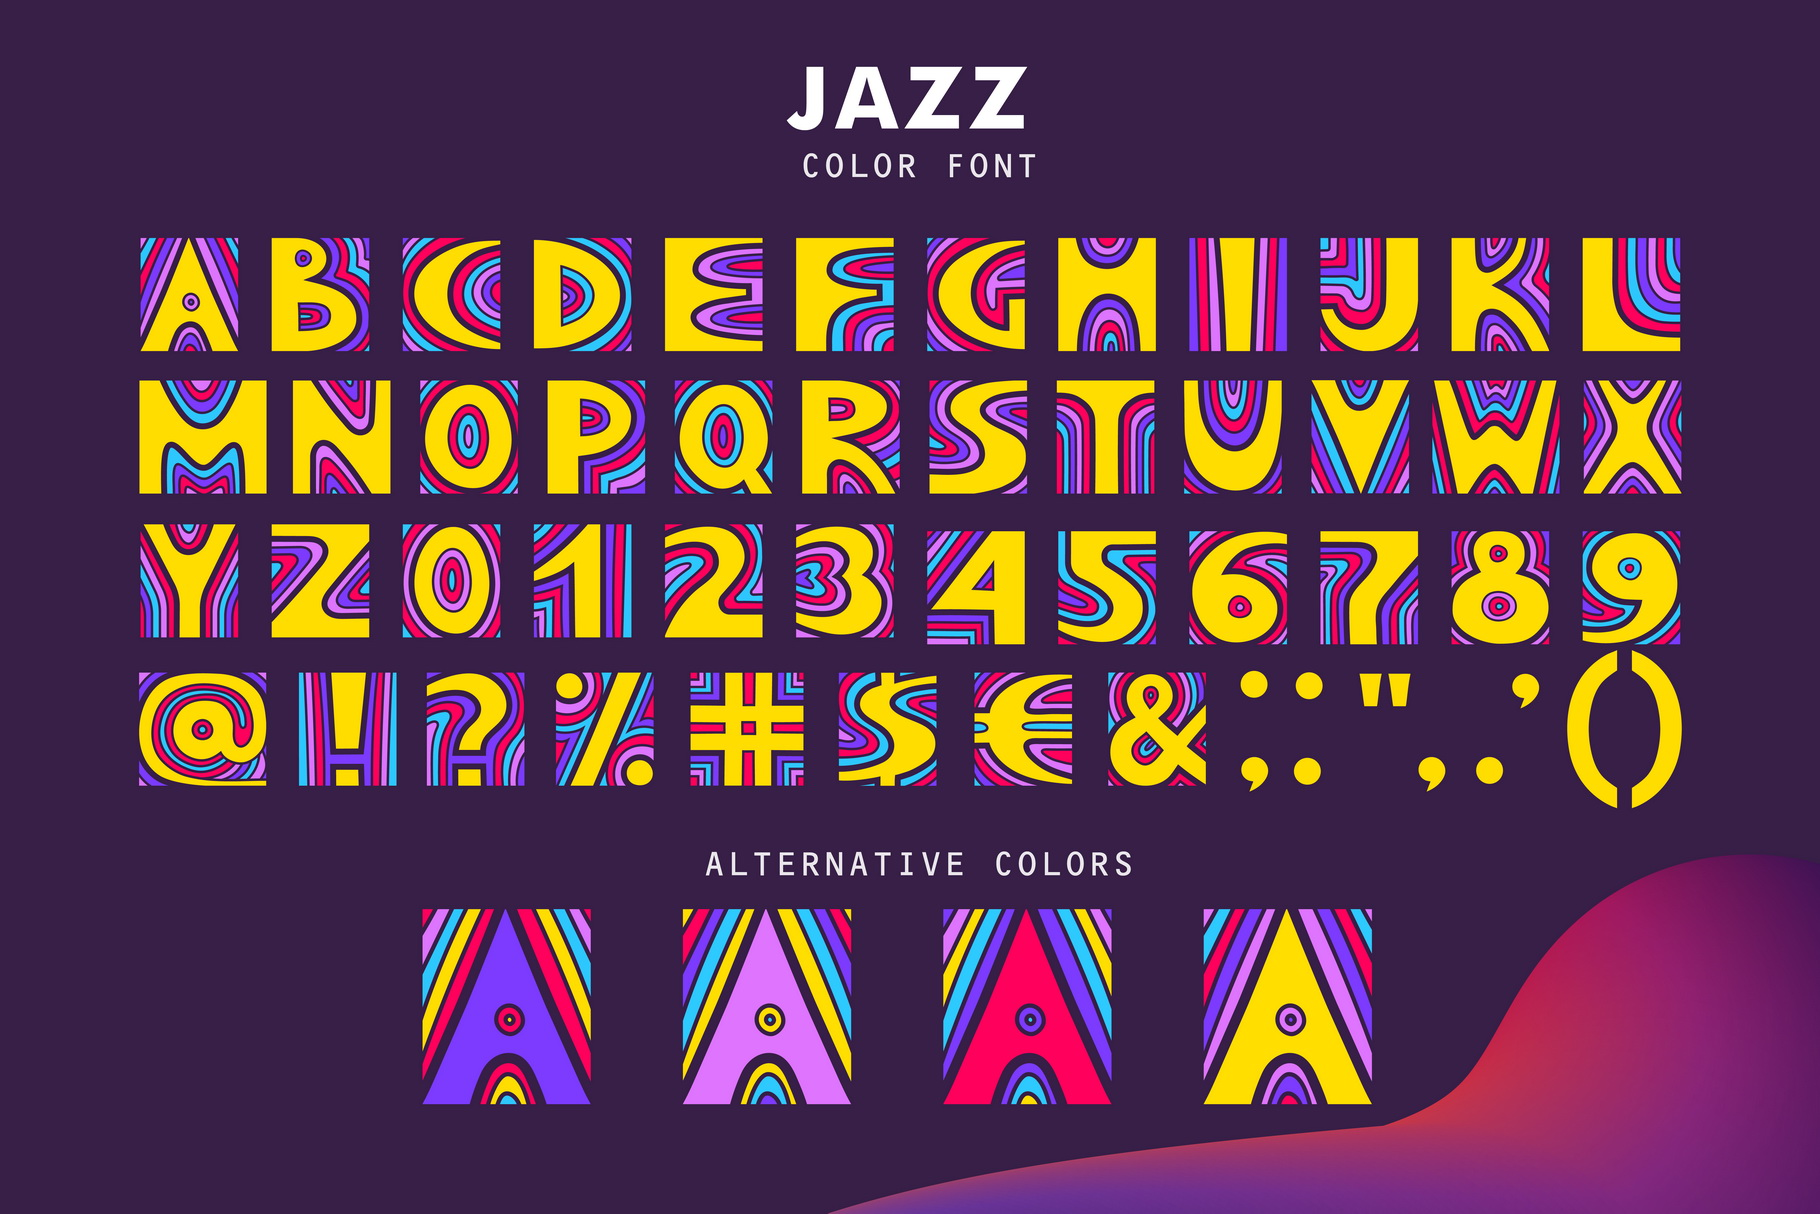 JAZZ - SVG Color Font example image 3